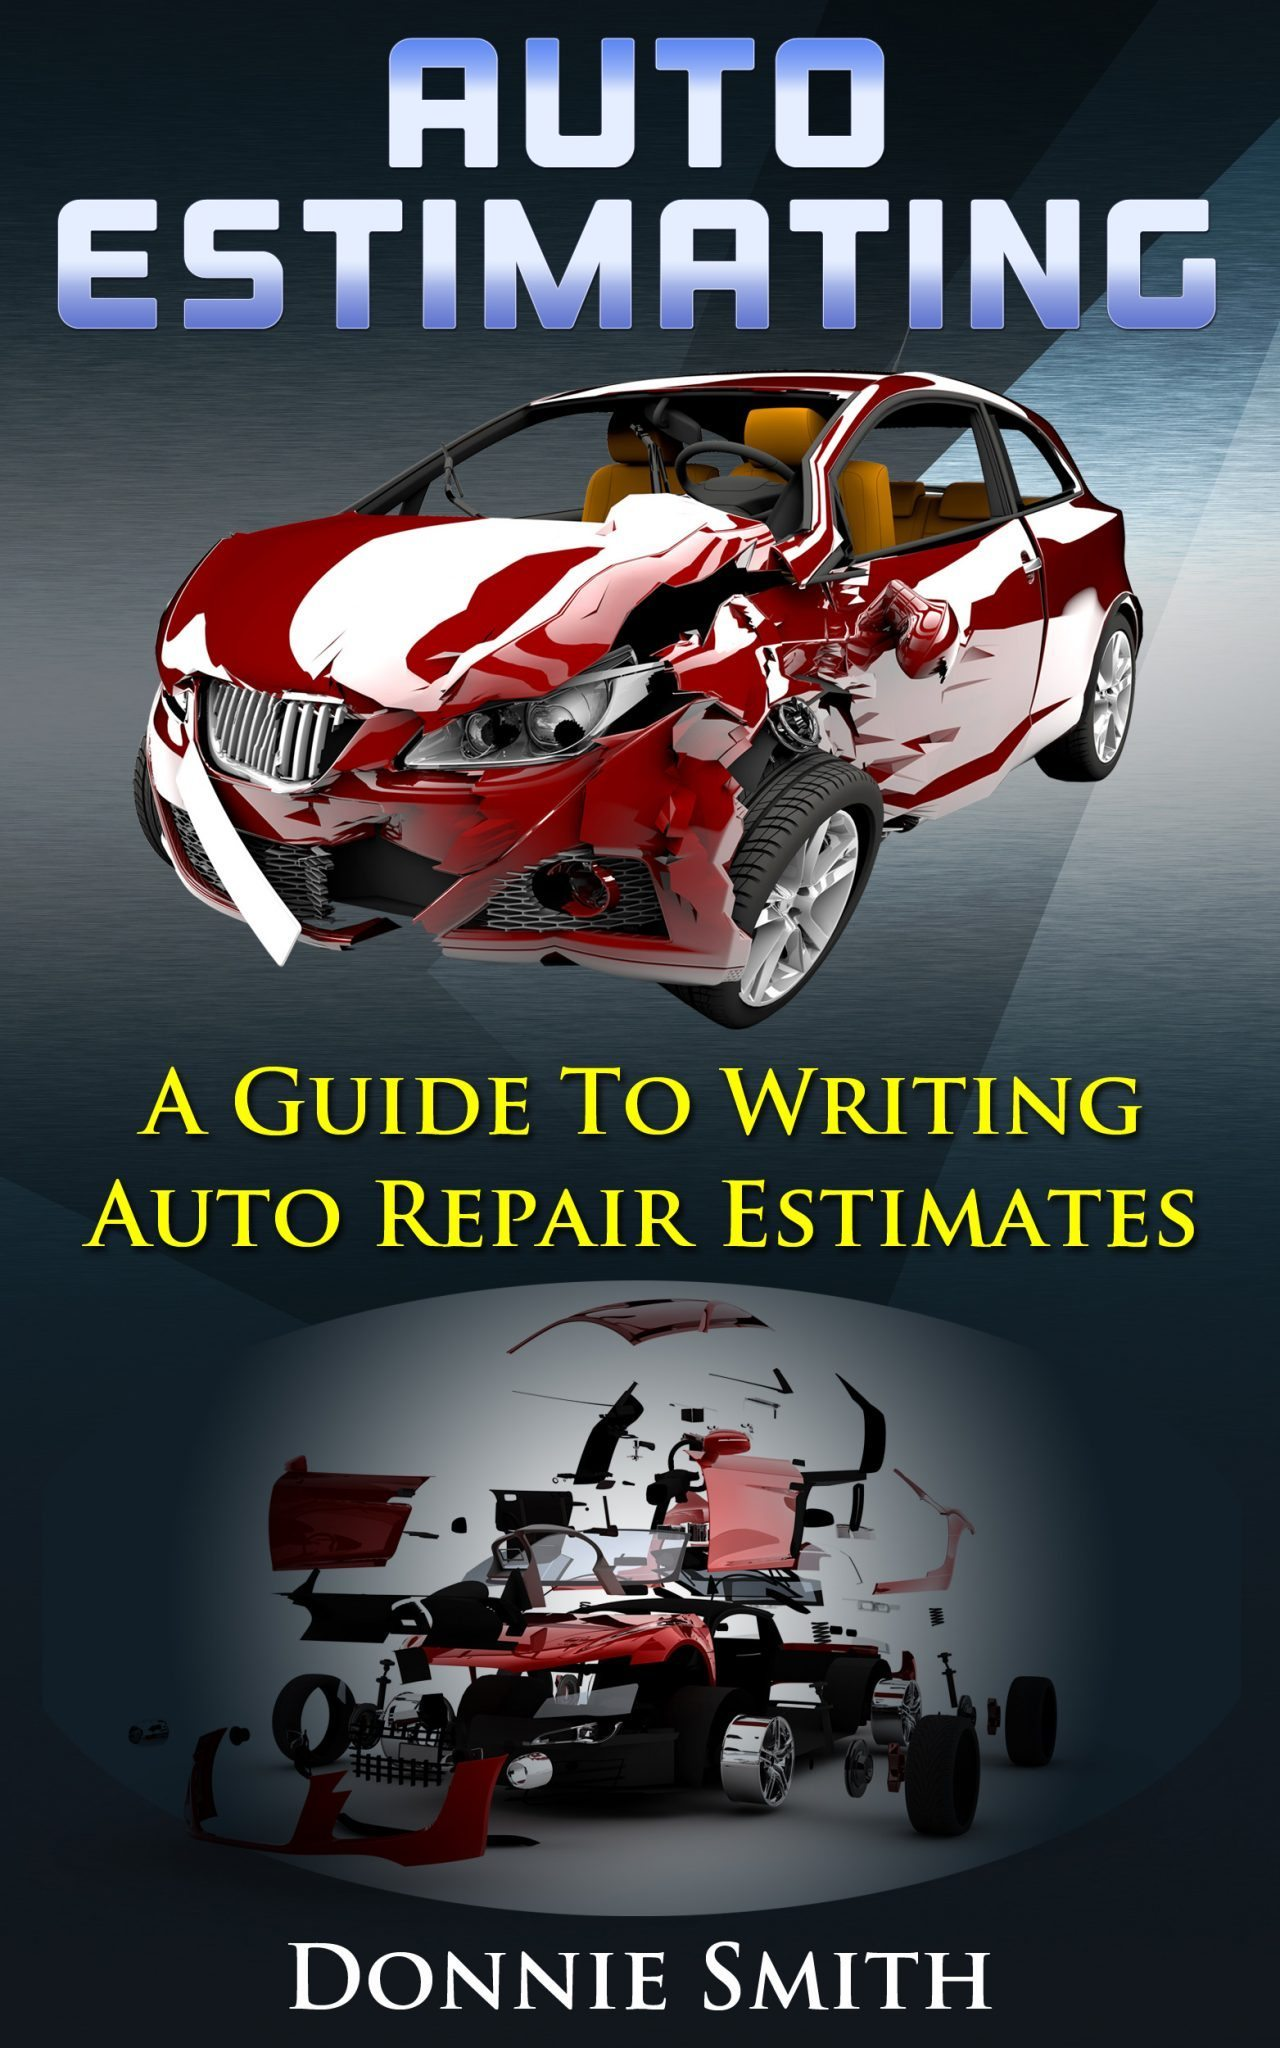 Auto Estimating